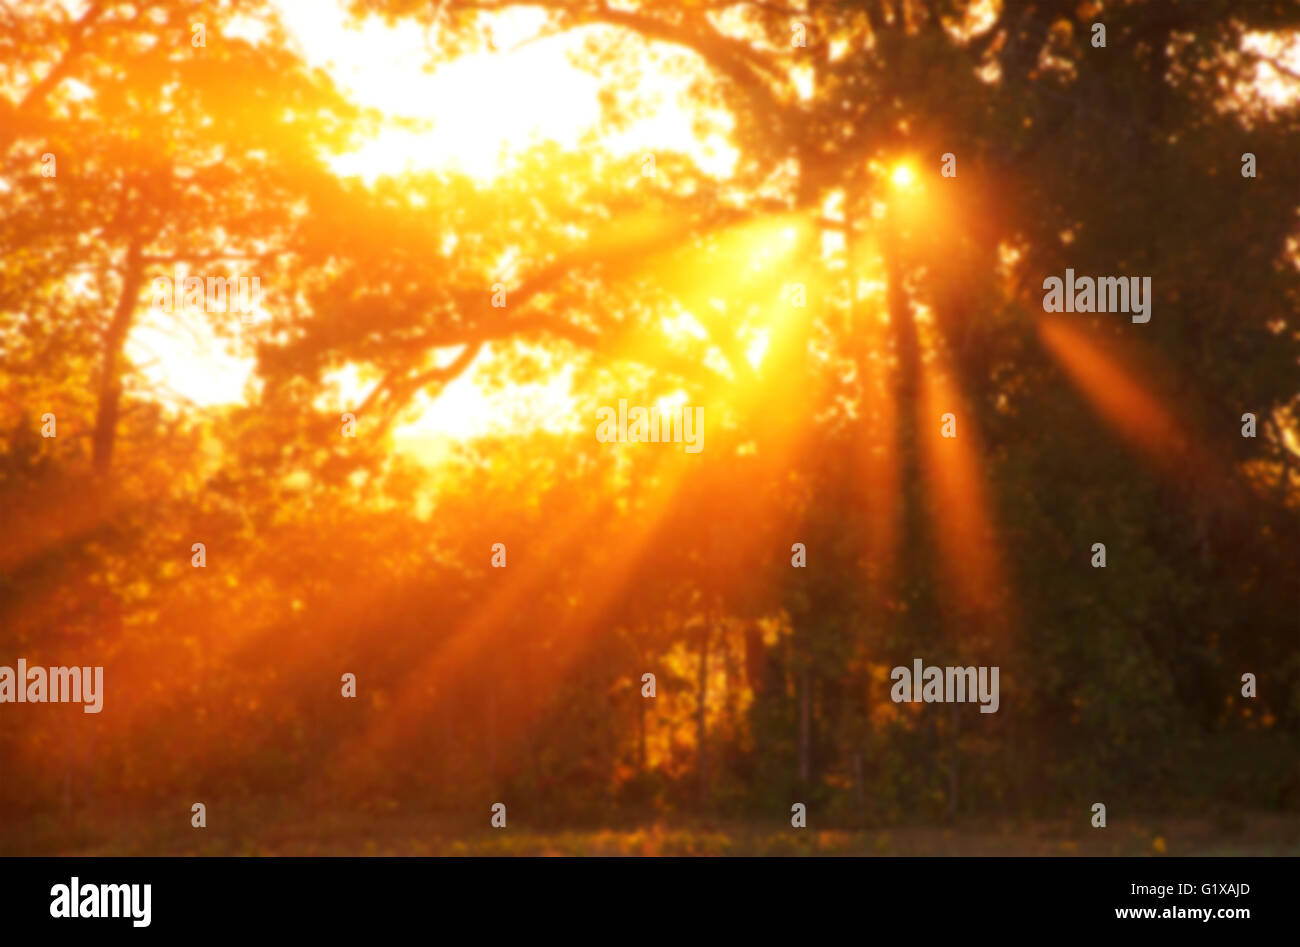 Blurred Background Image Of A Dramatic Sunrise In Deep Orange Color With  Rays Through Trees In Morning Mist